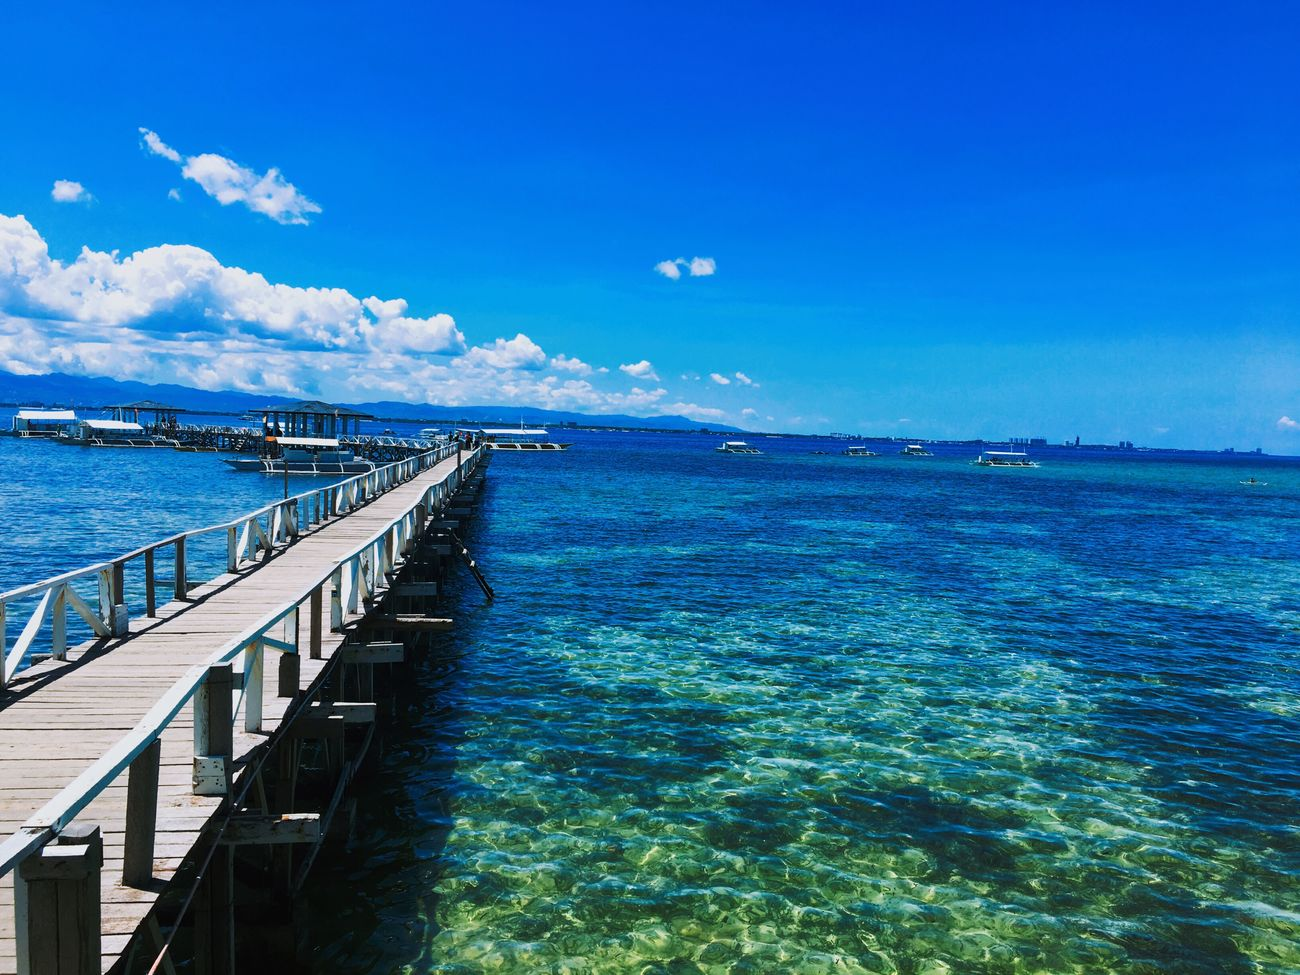 Cebu Scuba Diving Beach Blue Sky Sea Followme Trip First Eyeem Photo